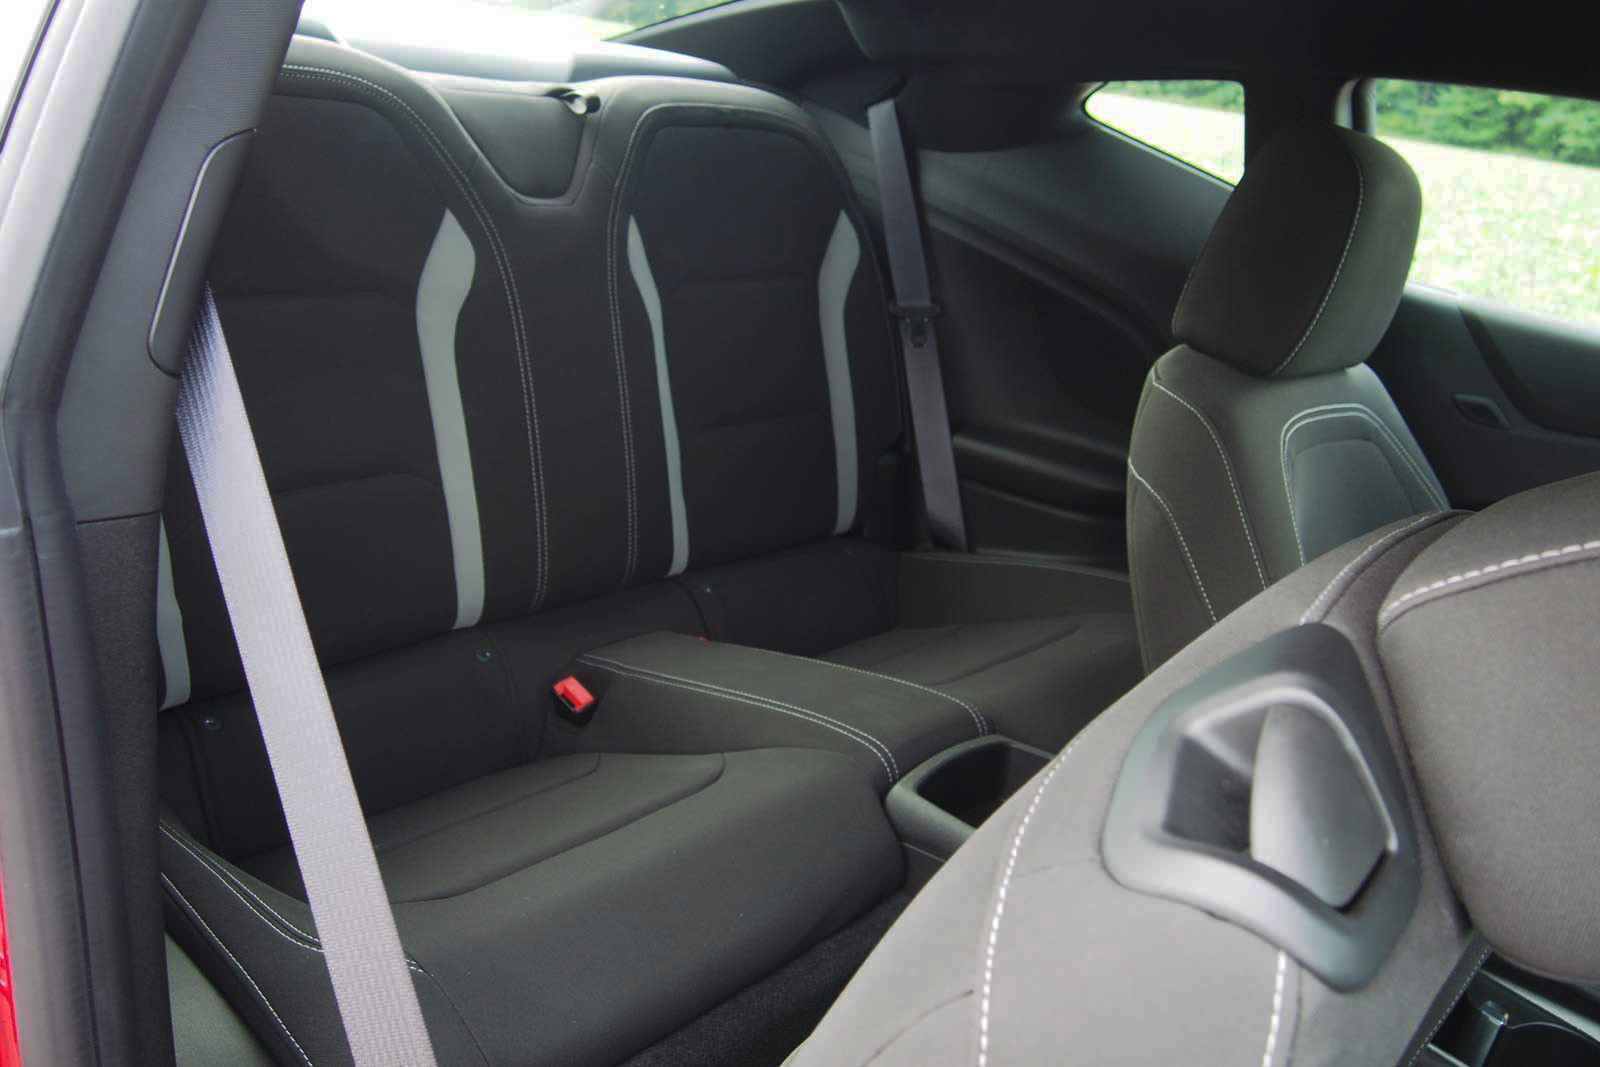 2017 chevy camaro car seat covers velcromag. Black Bedroom Furniture Sets. Home Design Ideas